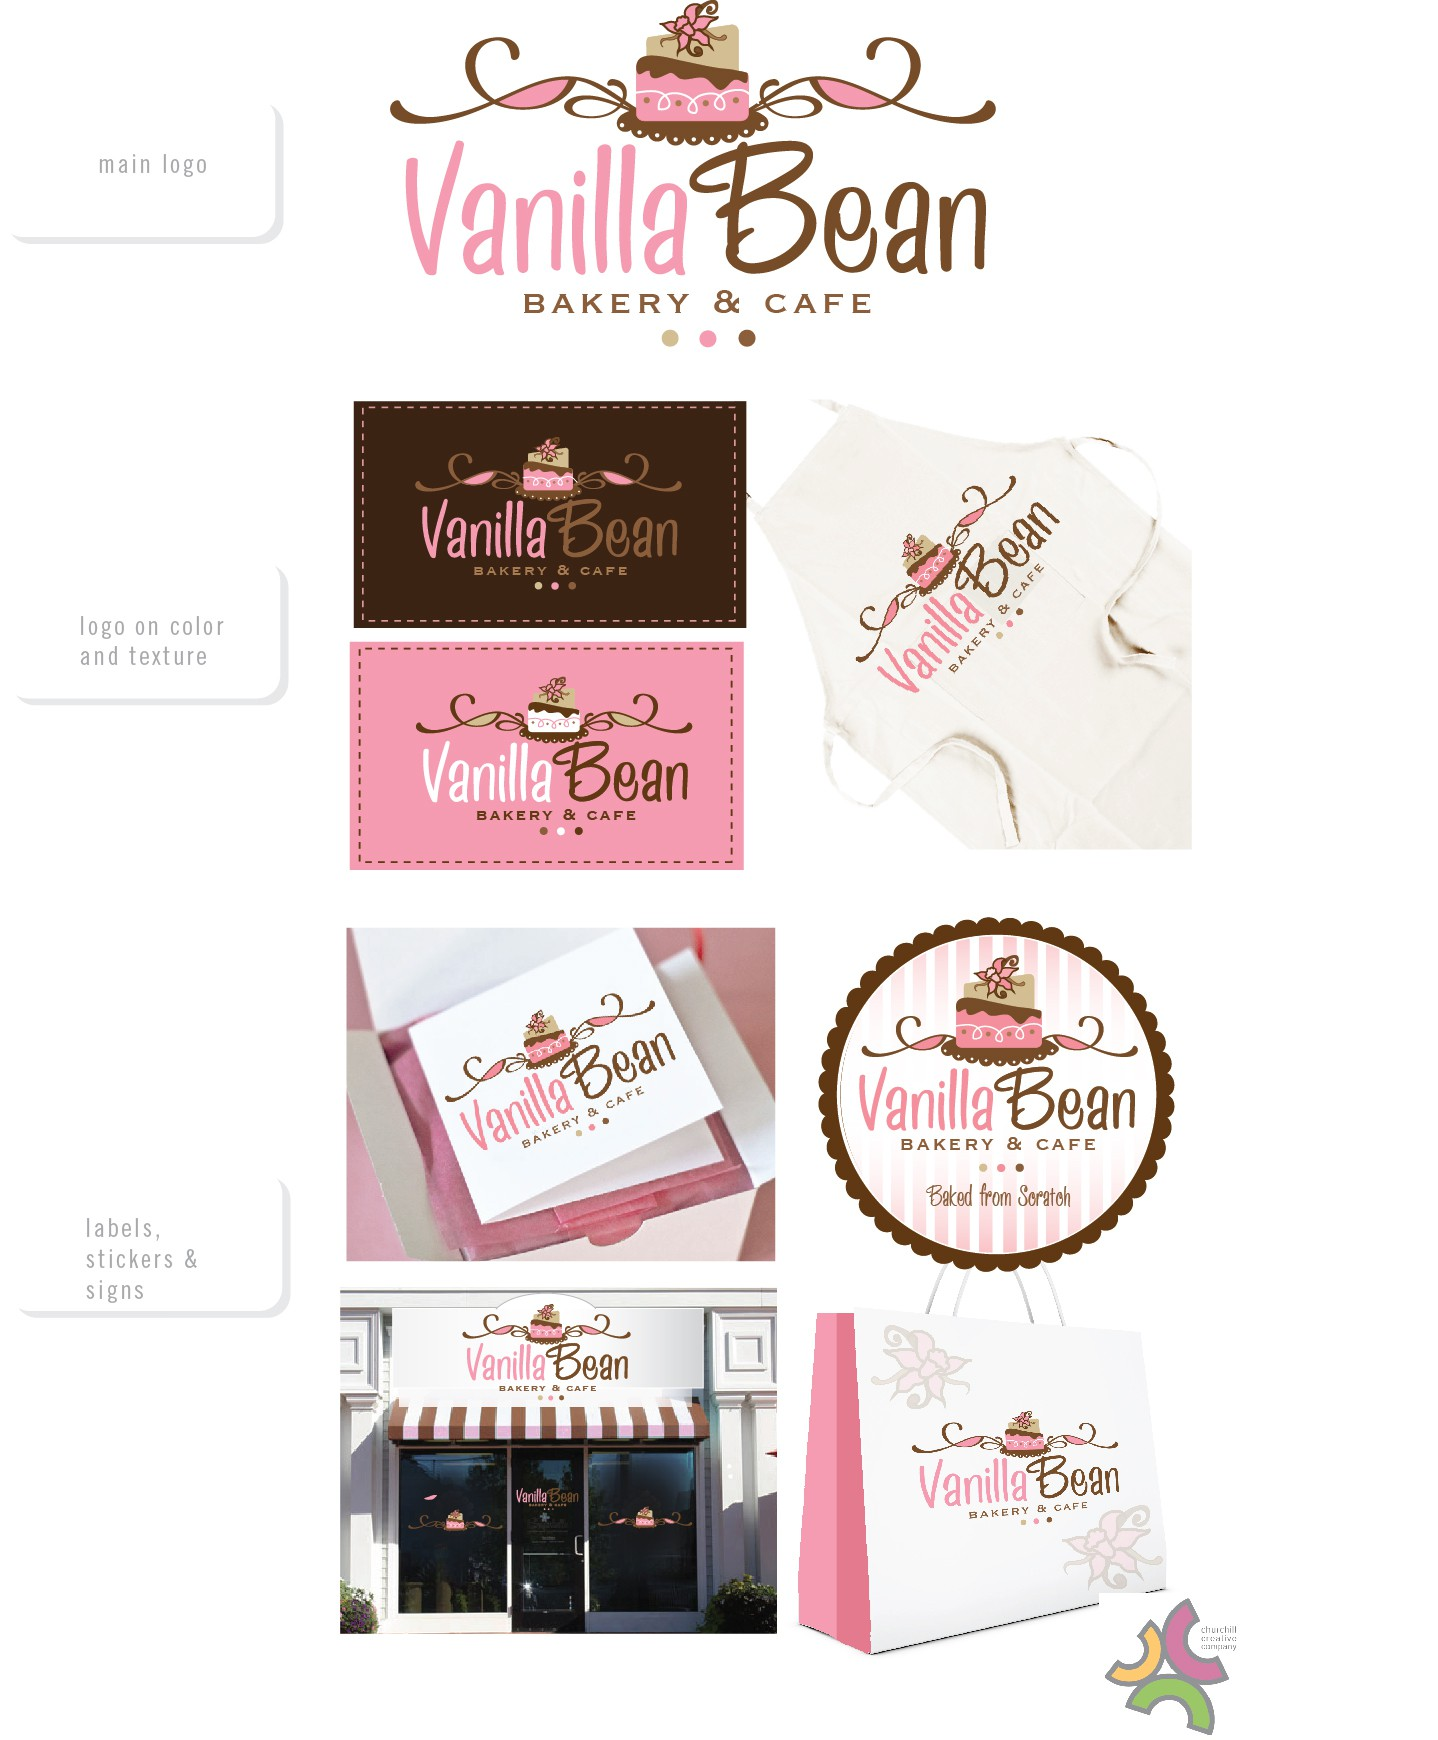 New logo wanted for Vanilla Bean Bakery and Cafe